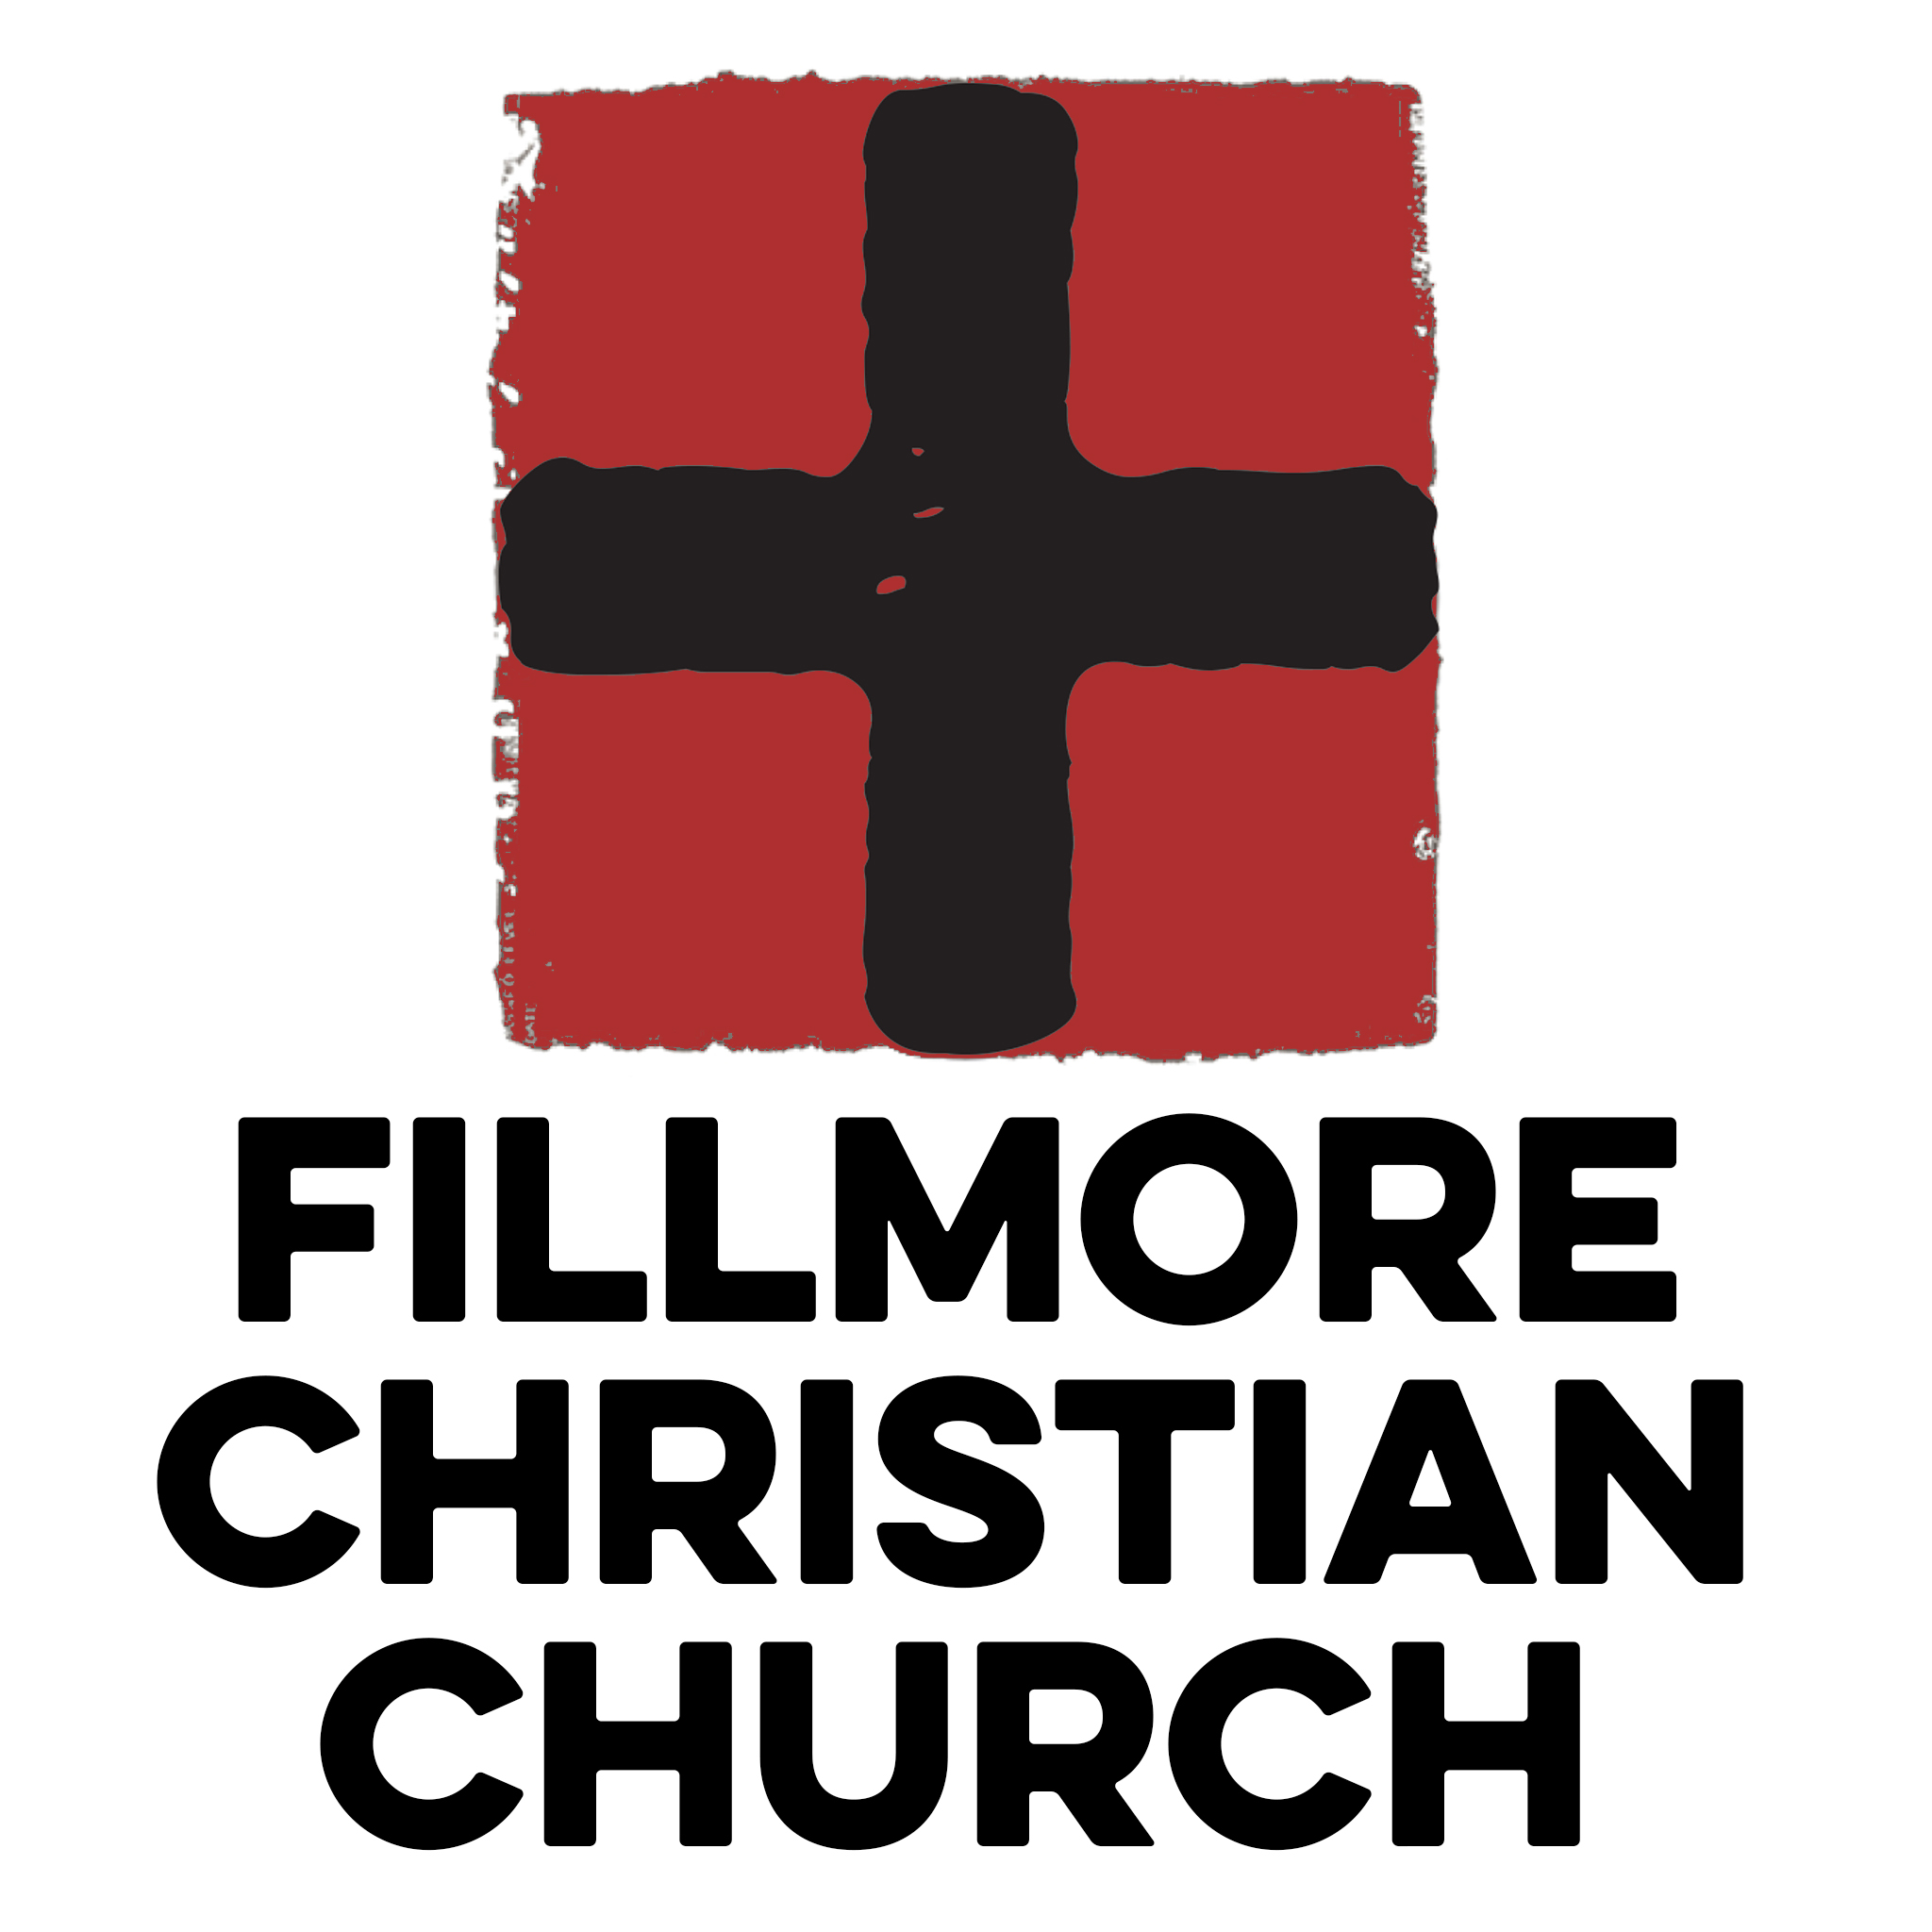 Fillmore Christian